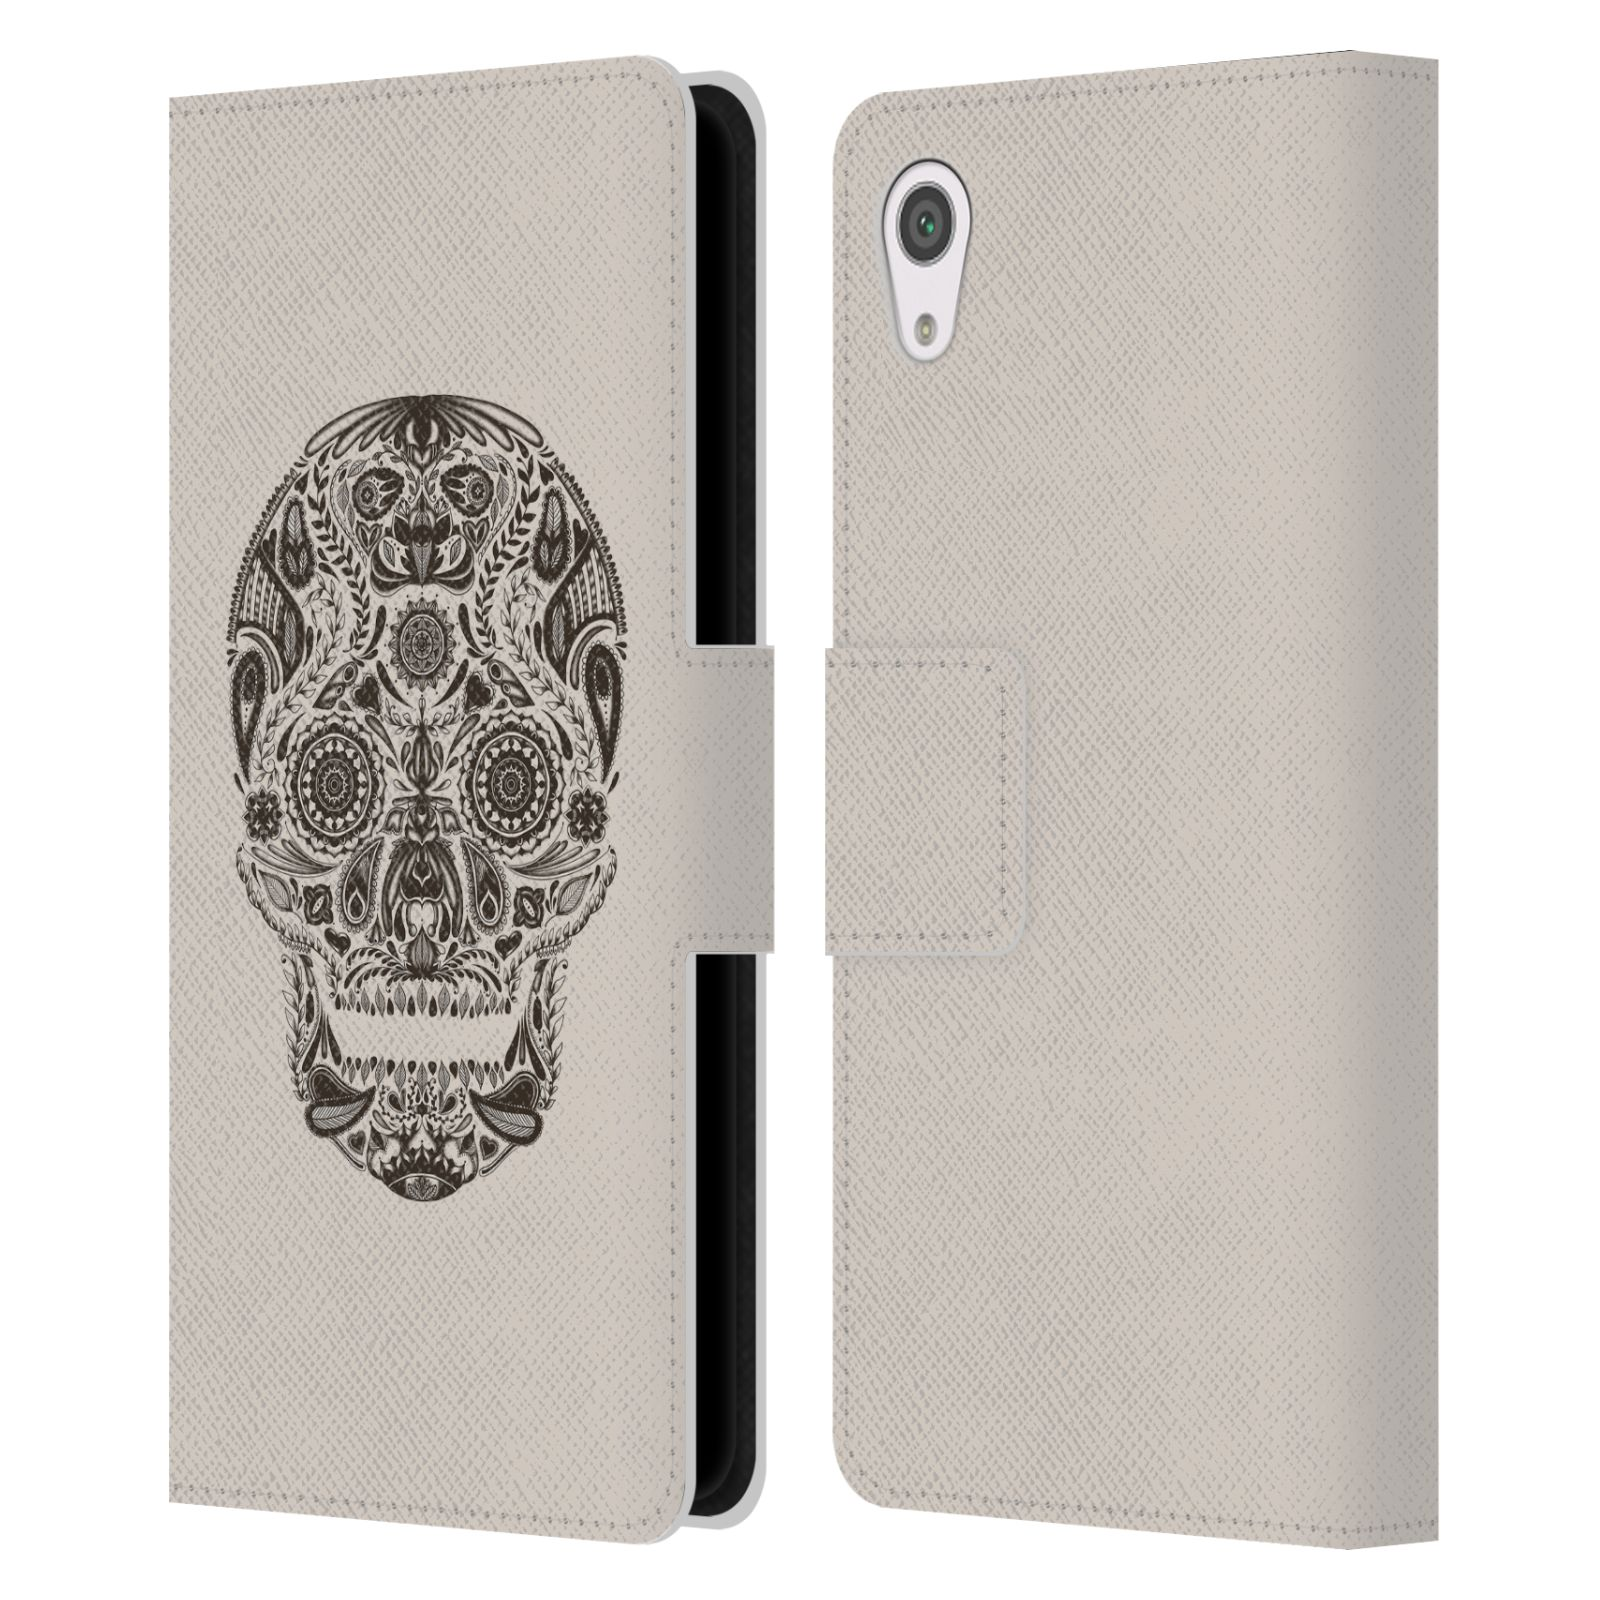 OFFICIAL-TOBE-FONSECA-SKULLS-LEATHER-BOOK-WALLET-CASE-COVER-FOR-SONY-PHONES-1